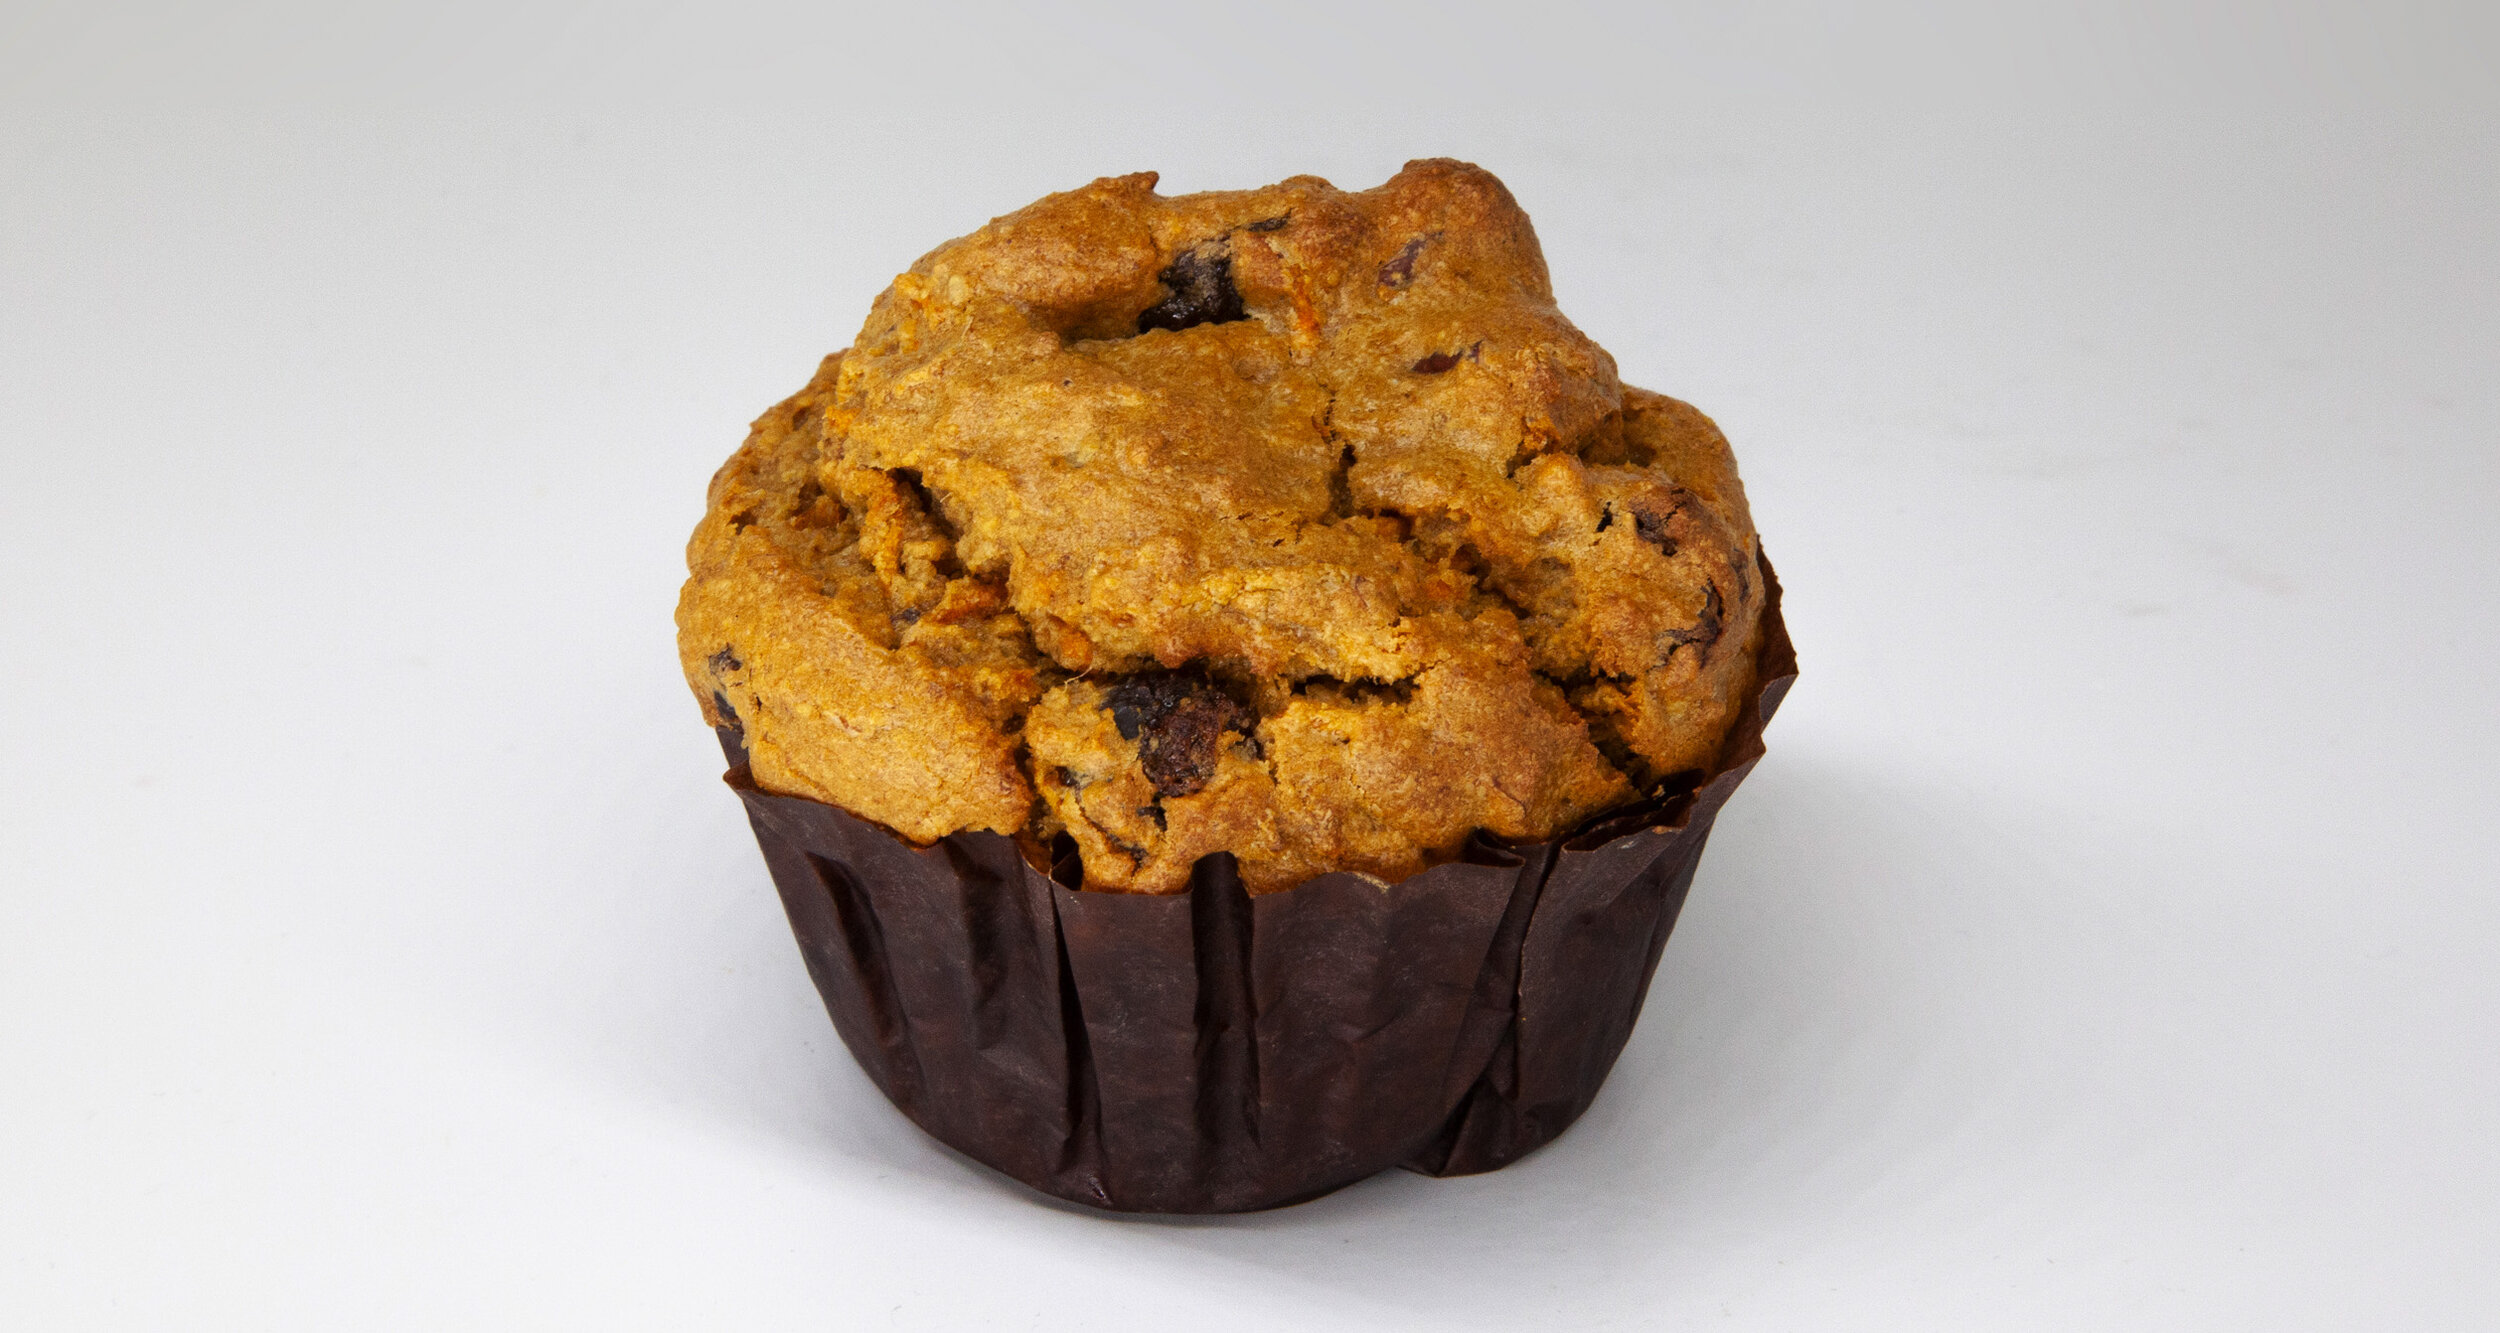 CARROT & NUT MUFFIN - 373 KCAL PER SERVINGOatmeal flour, apple sauce, brown sugar, vanilla extract, baking powder, baking soda, canola oil, salt, grounded ginger, carrots, eggs, raisins, almond$20